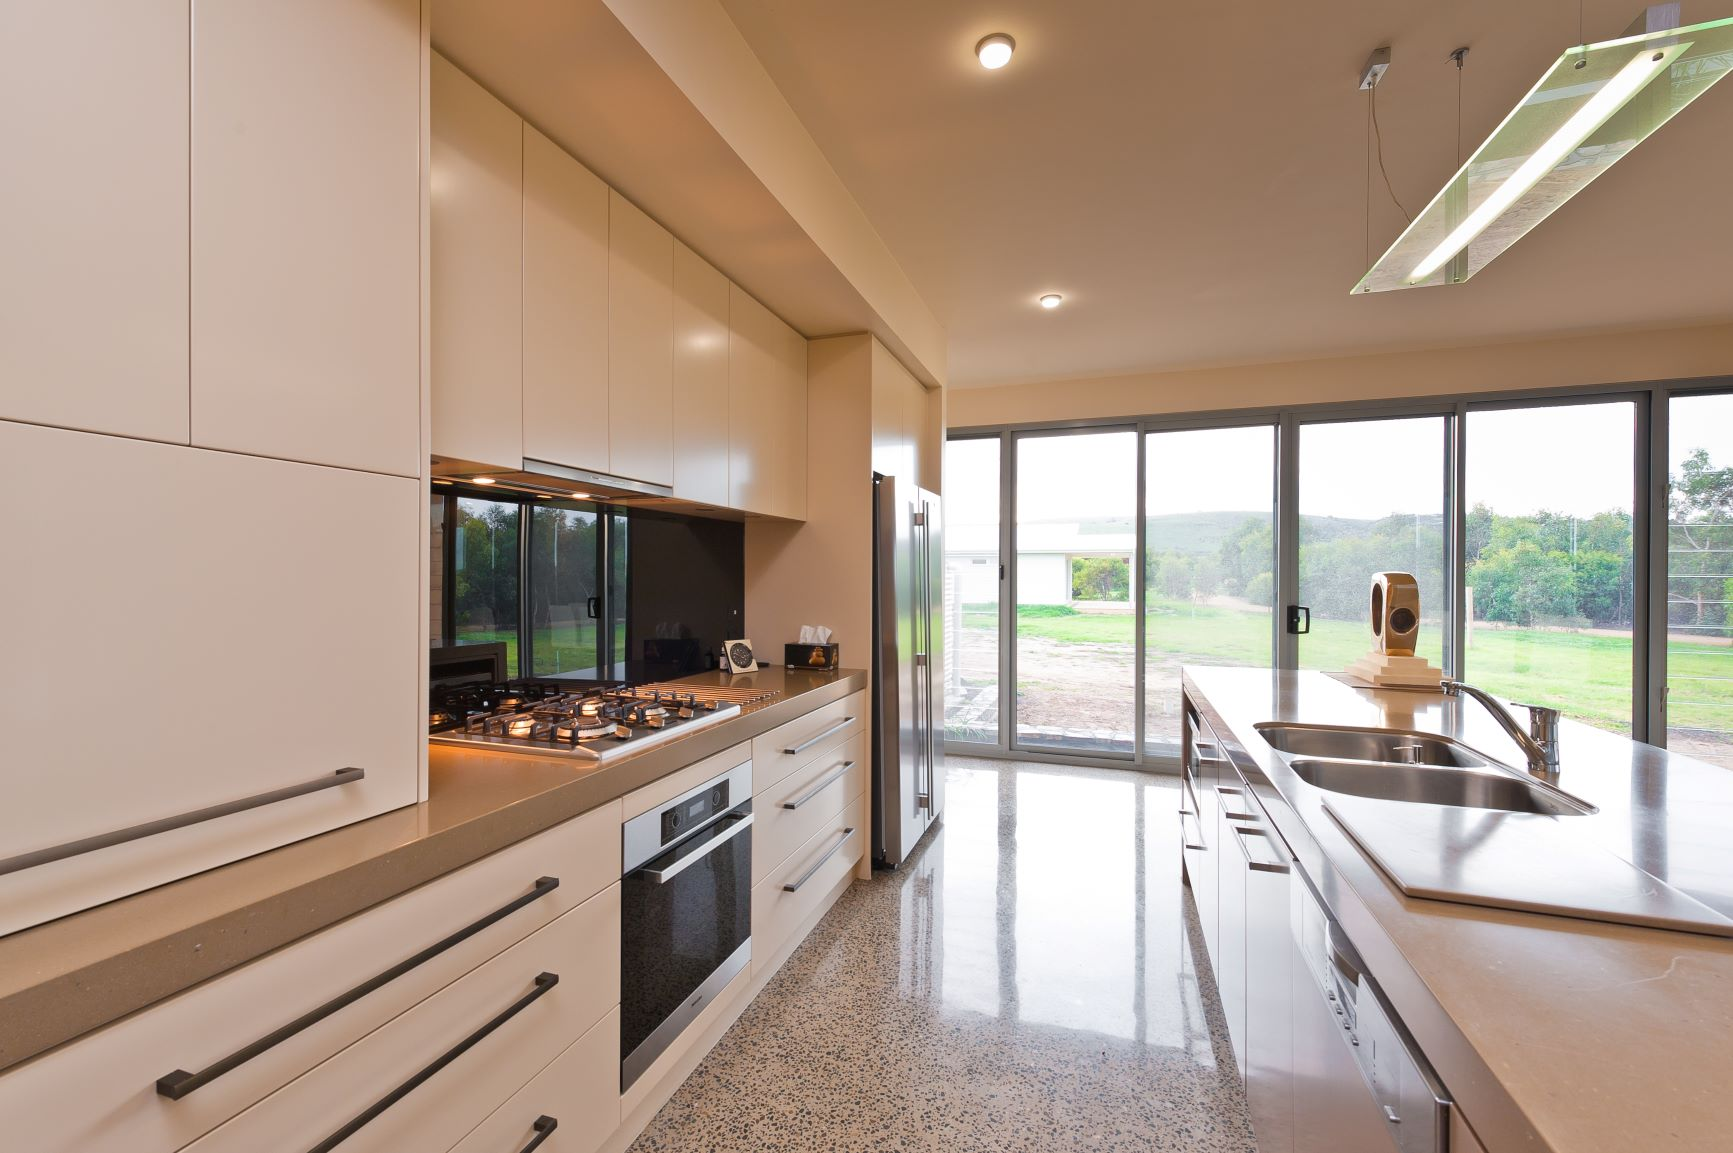 Custom Home, New Home, Family Home, Builders, Design, Beyond, Chiton, Fleurieu, Energy Efficient, Single Storey, Kitchen, Gas Stove Top, Modern, Drawers, Large Windows